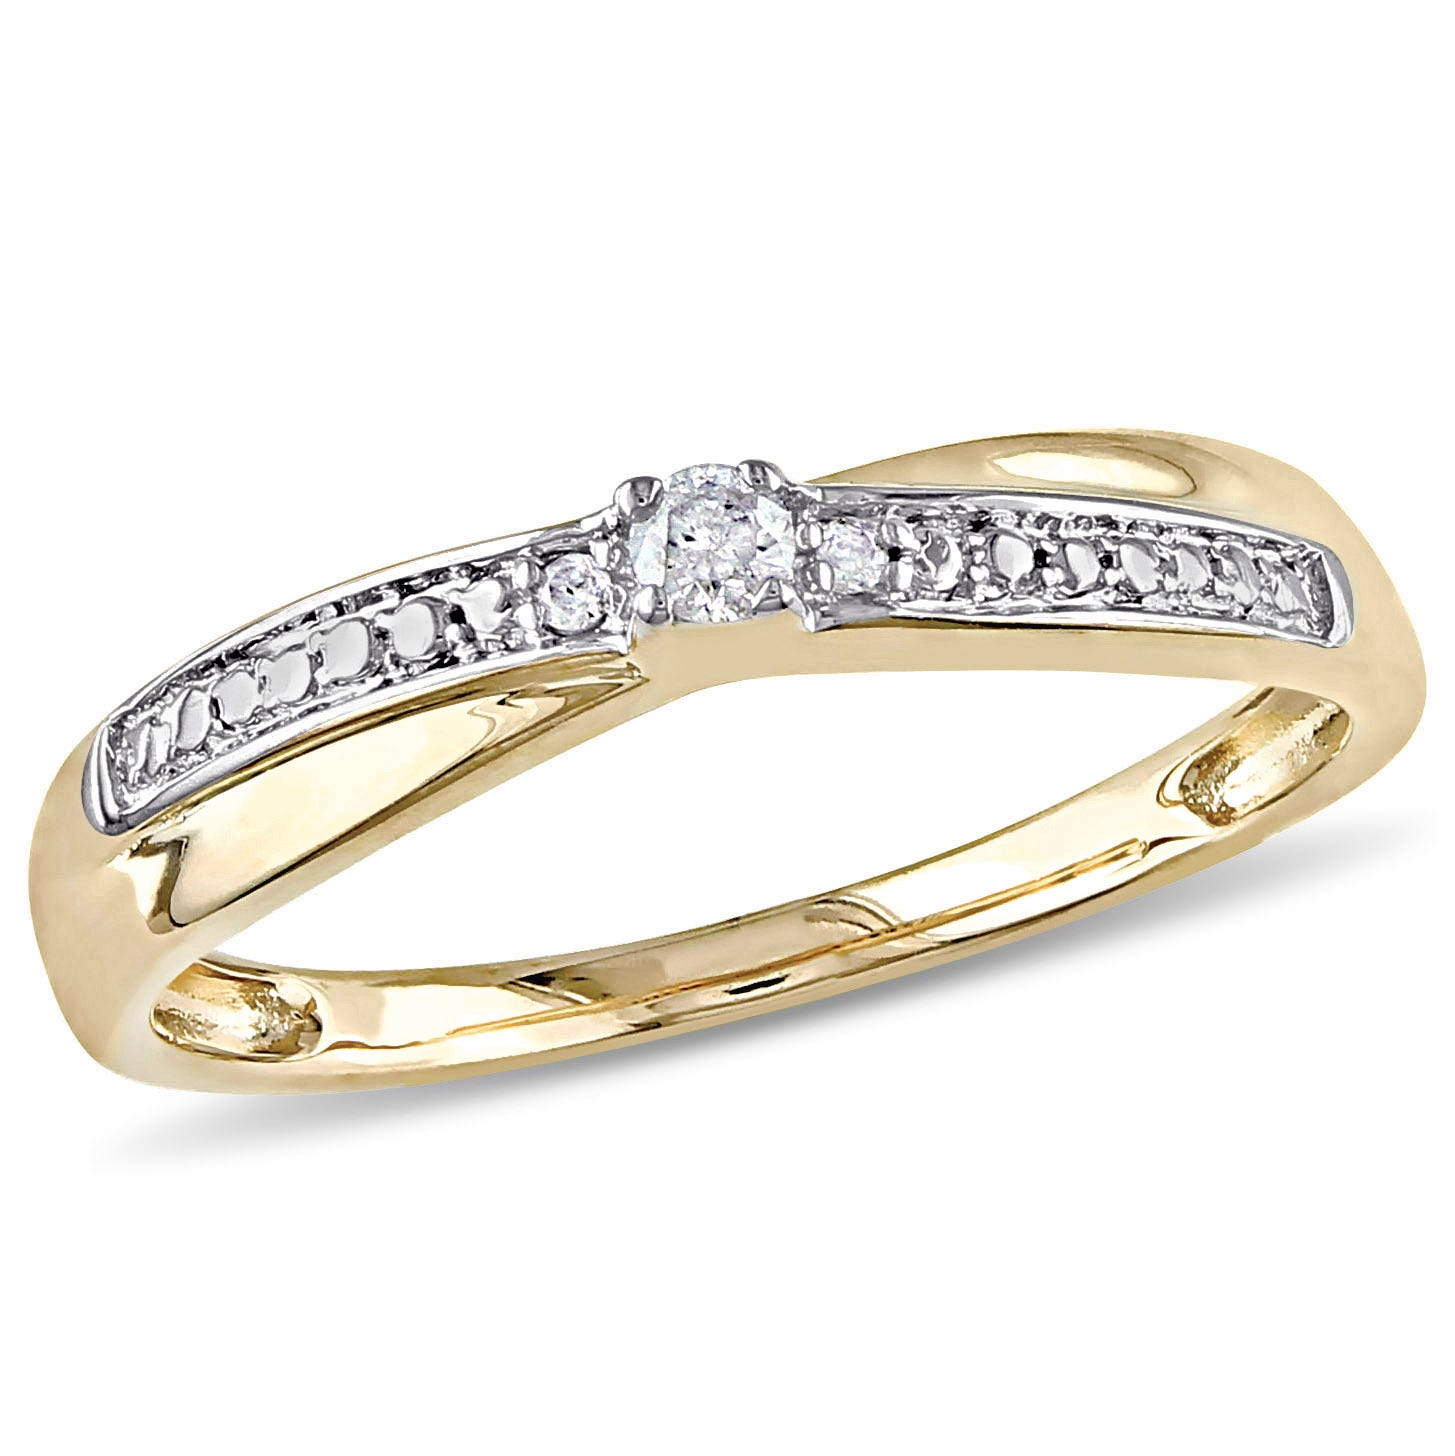 Round Cut Diamond Promise Ring .05ctw. in 10k Yellow Gold